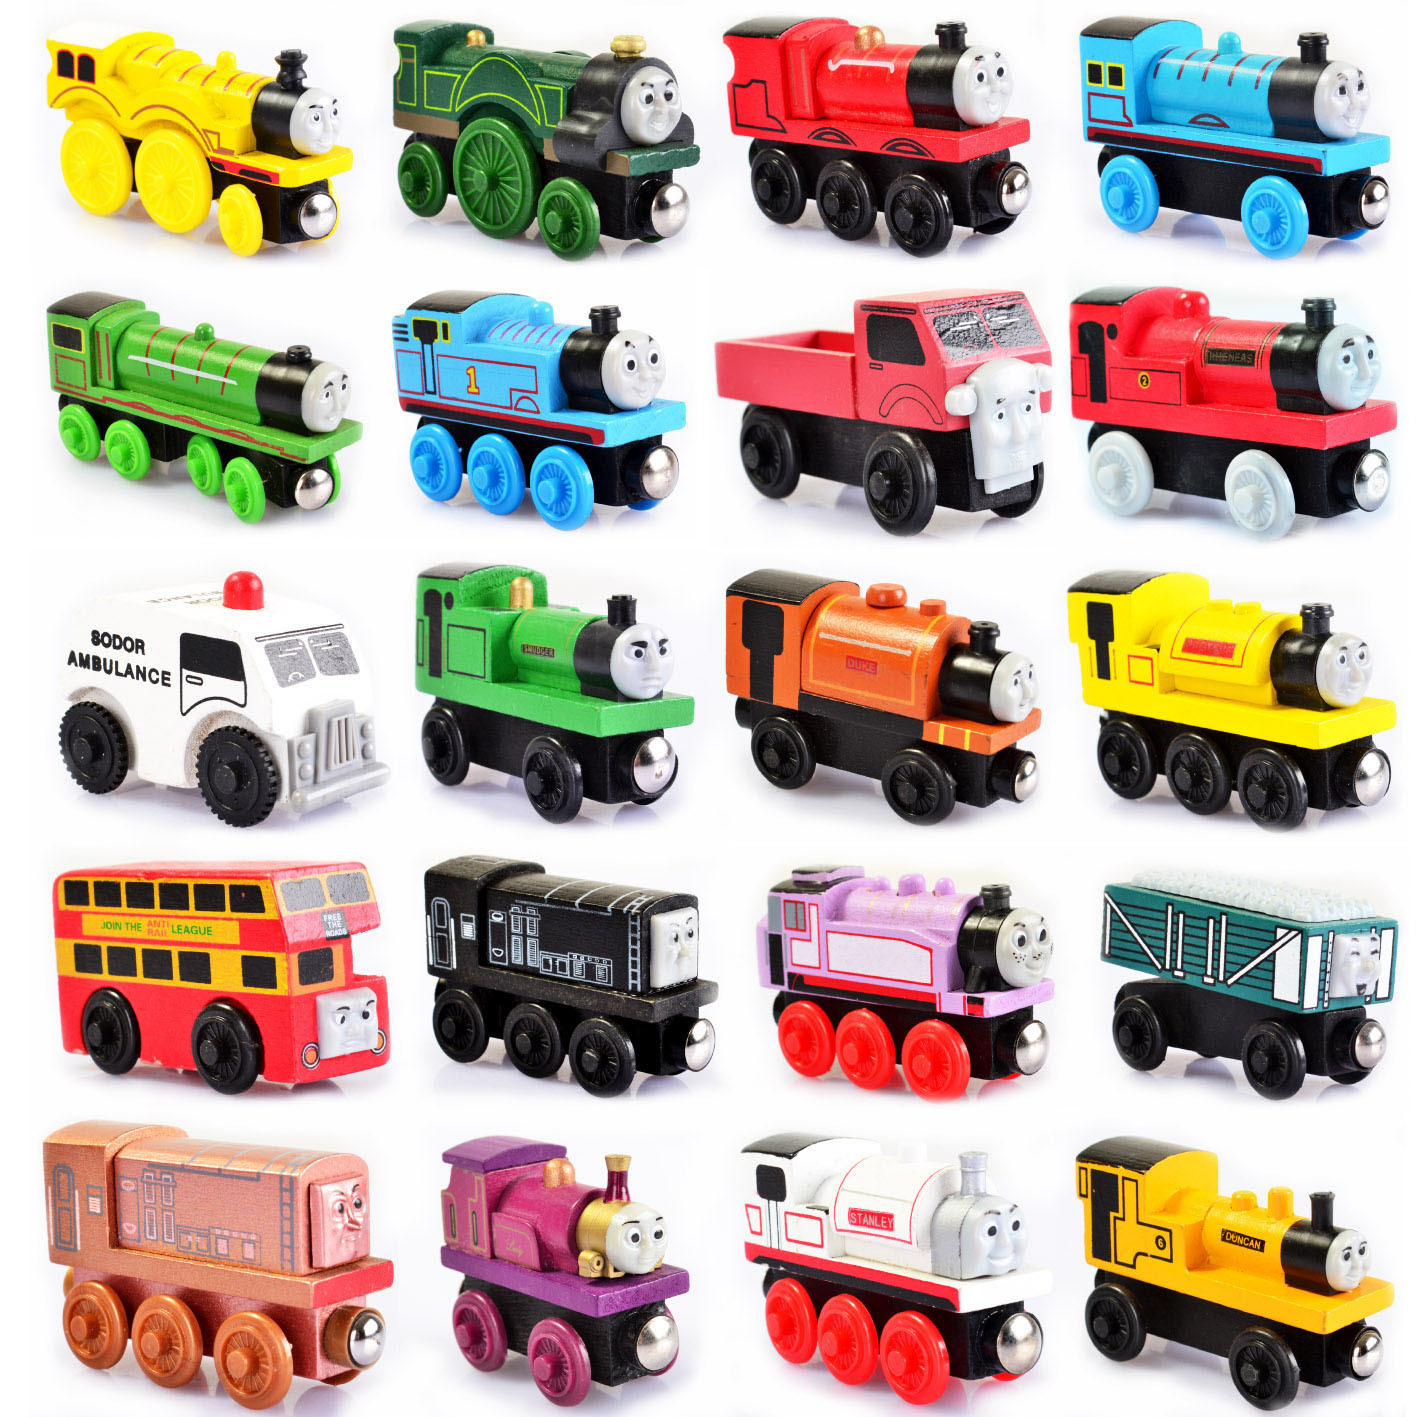 Thomas and Friends Anime Wooden Railway Trains Toy Trains Model